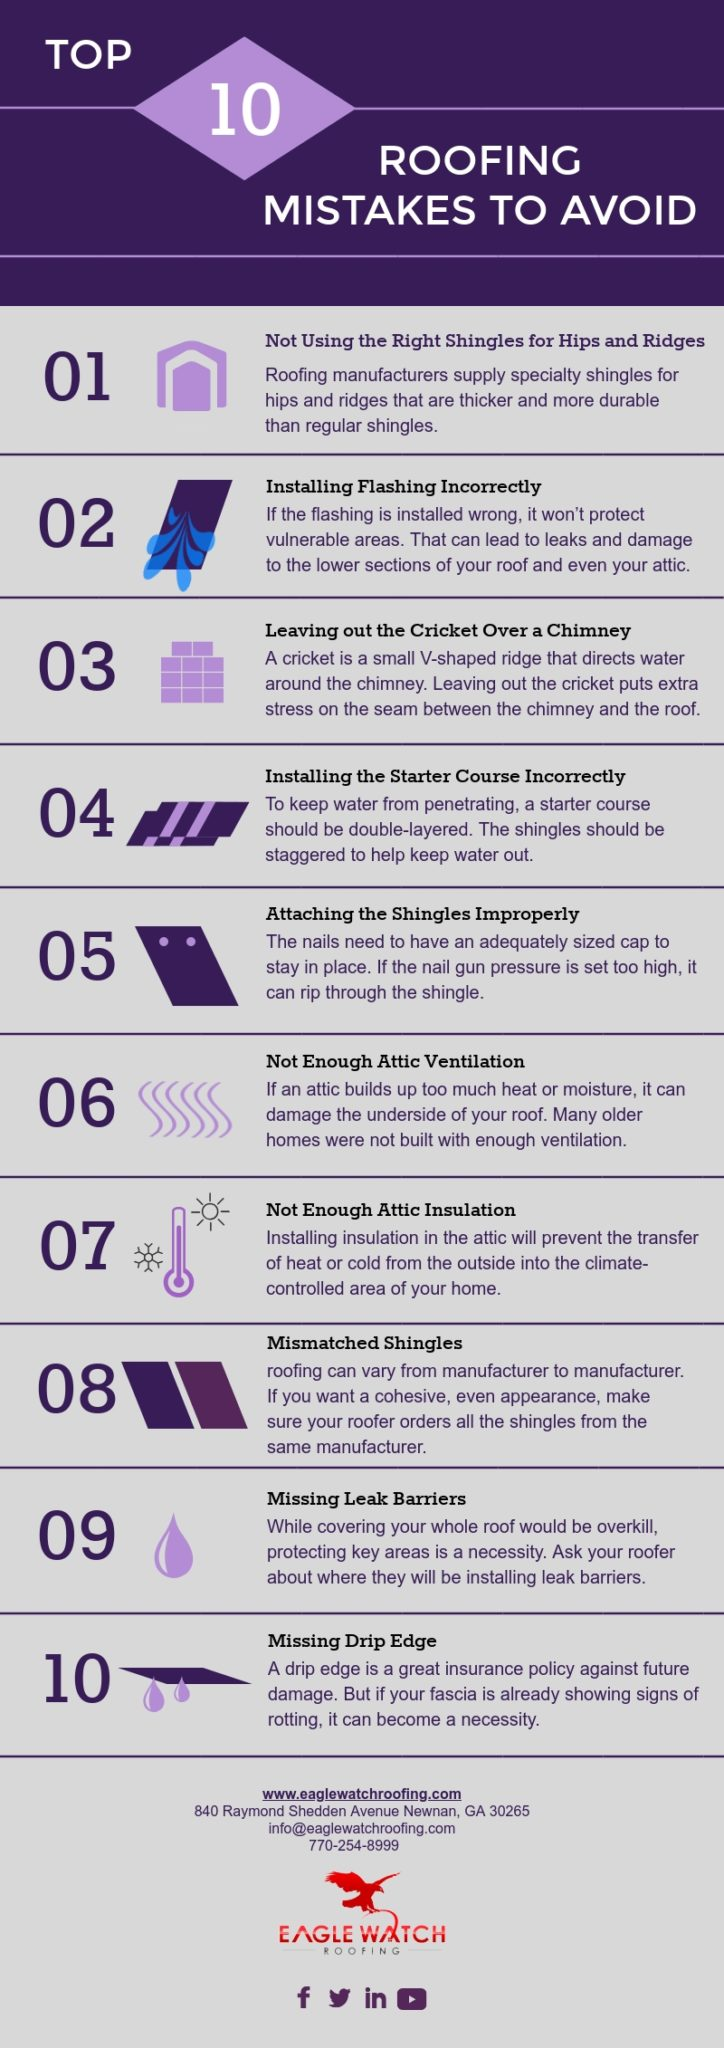 Top 10 Roofing Mistakes to Avoid [infographic]